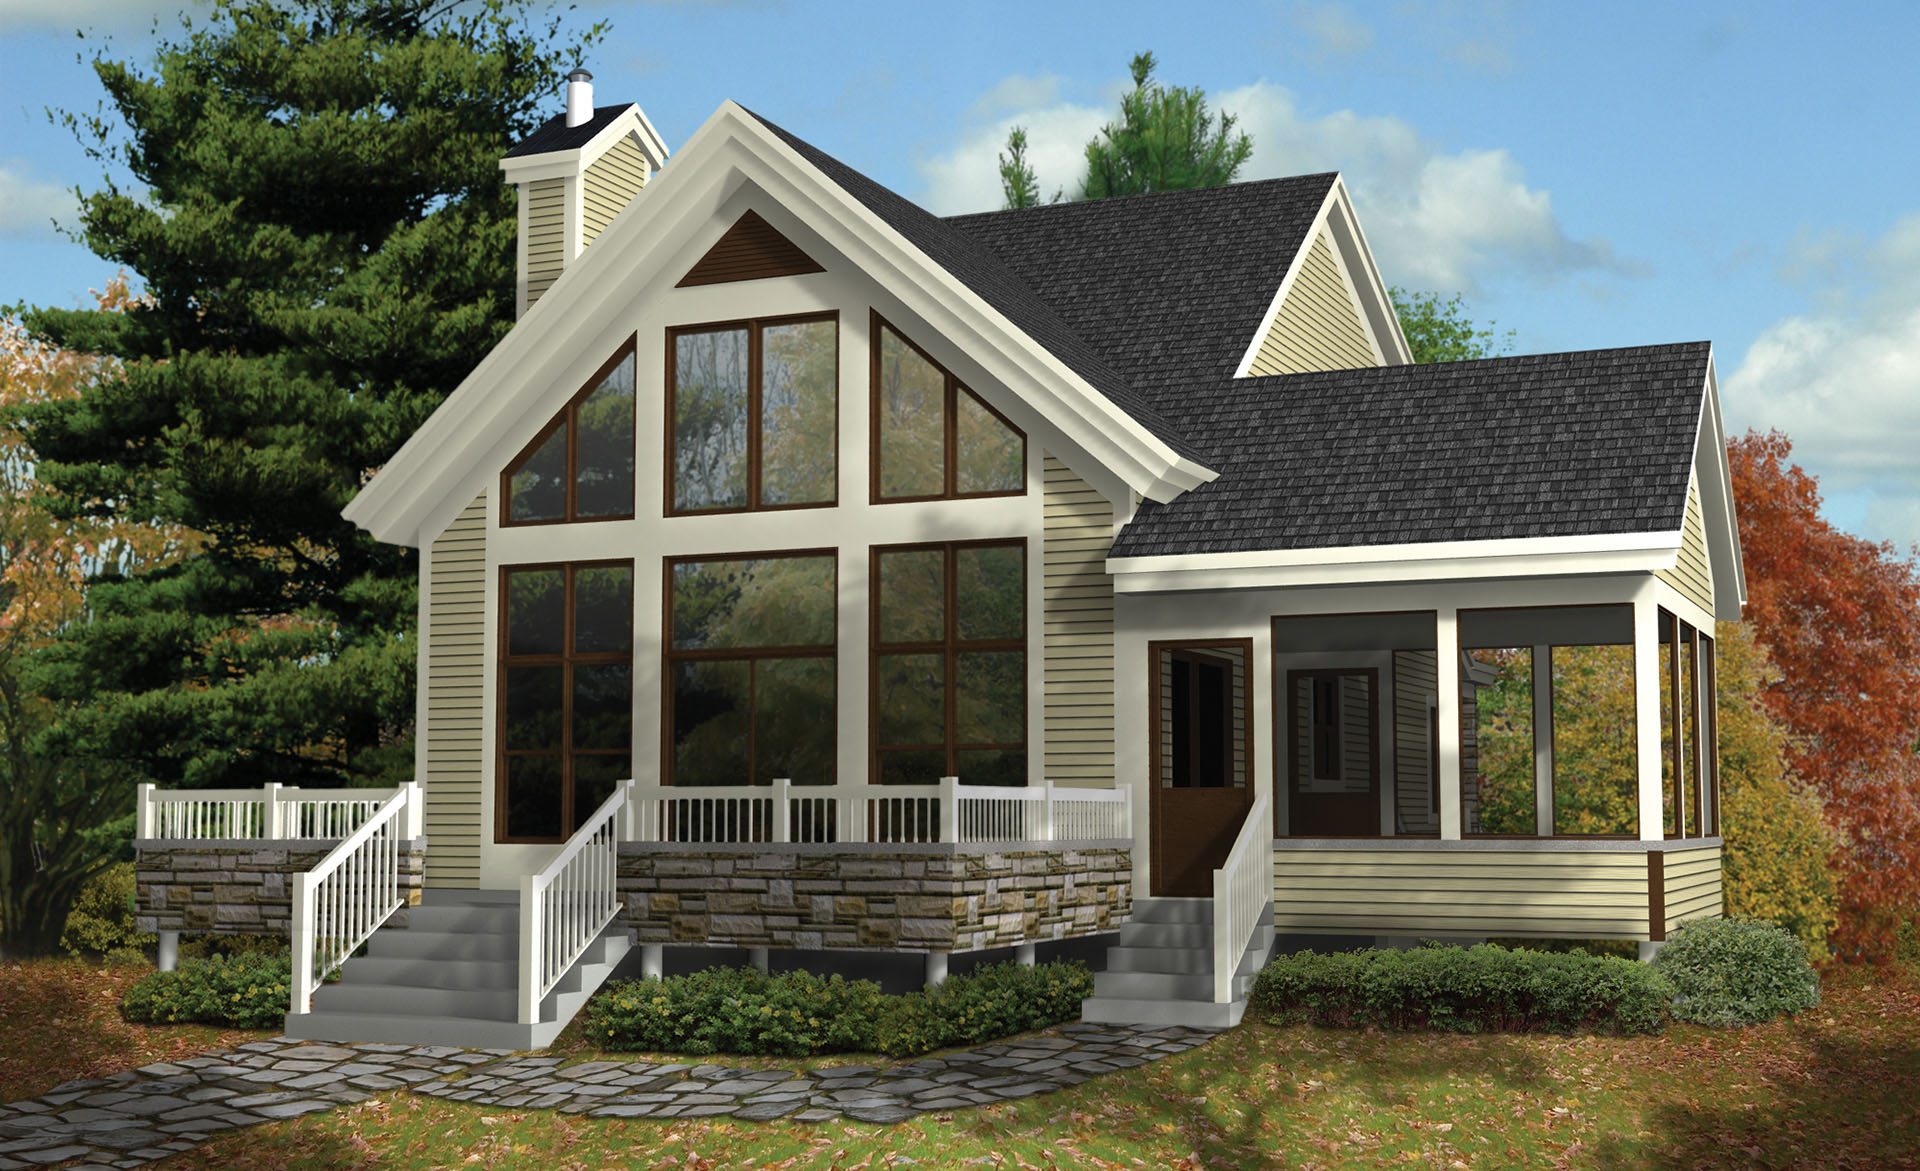 Vacation Haven - 80817pm Architectural Design House Plans